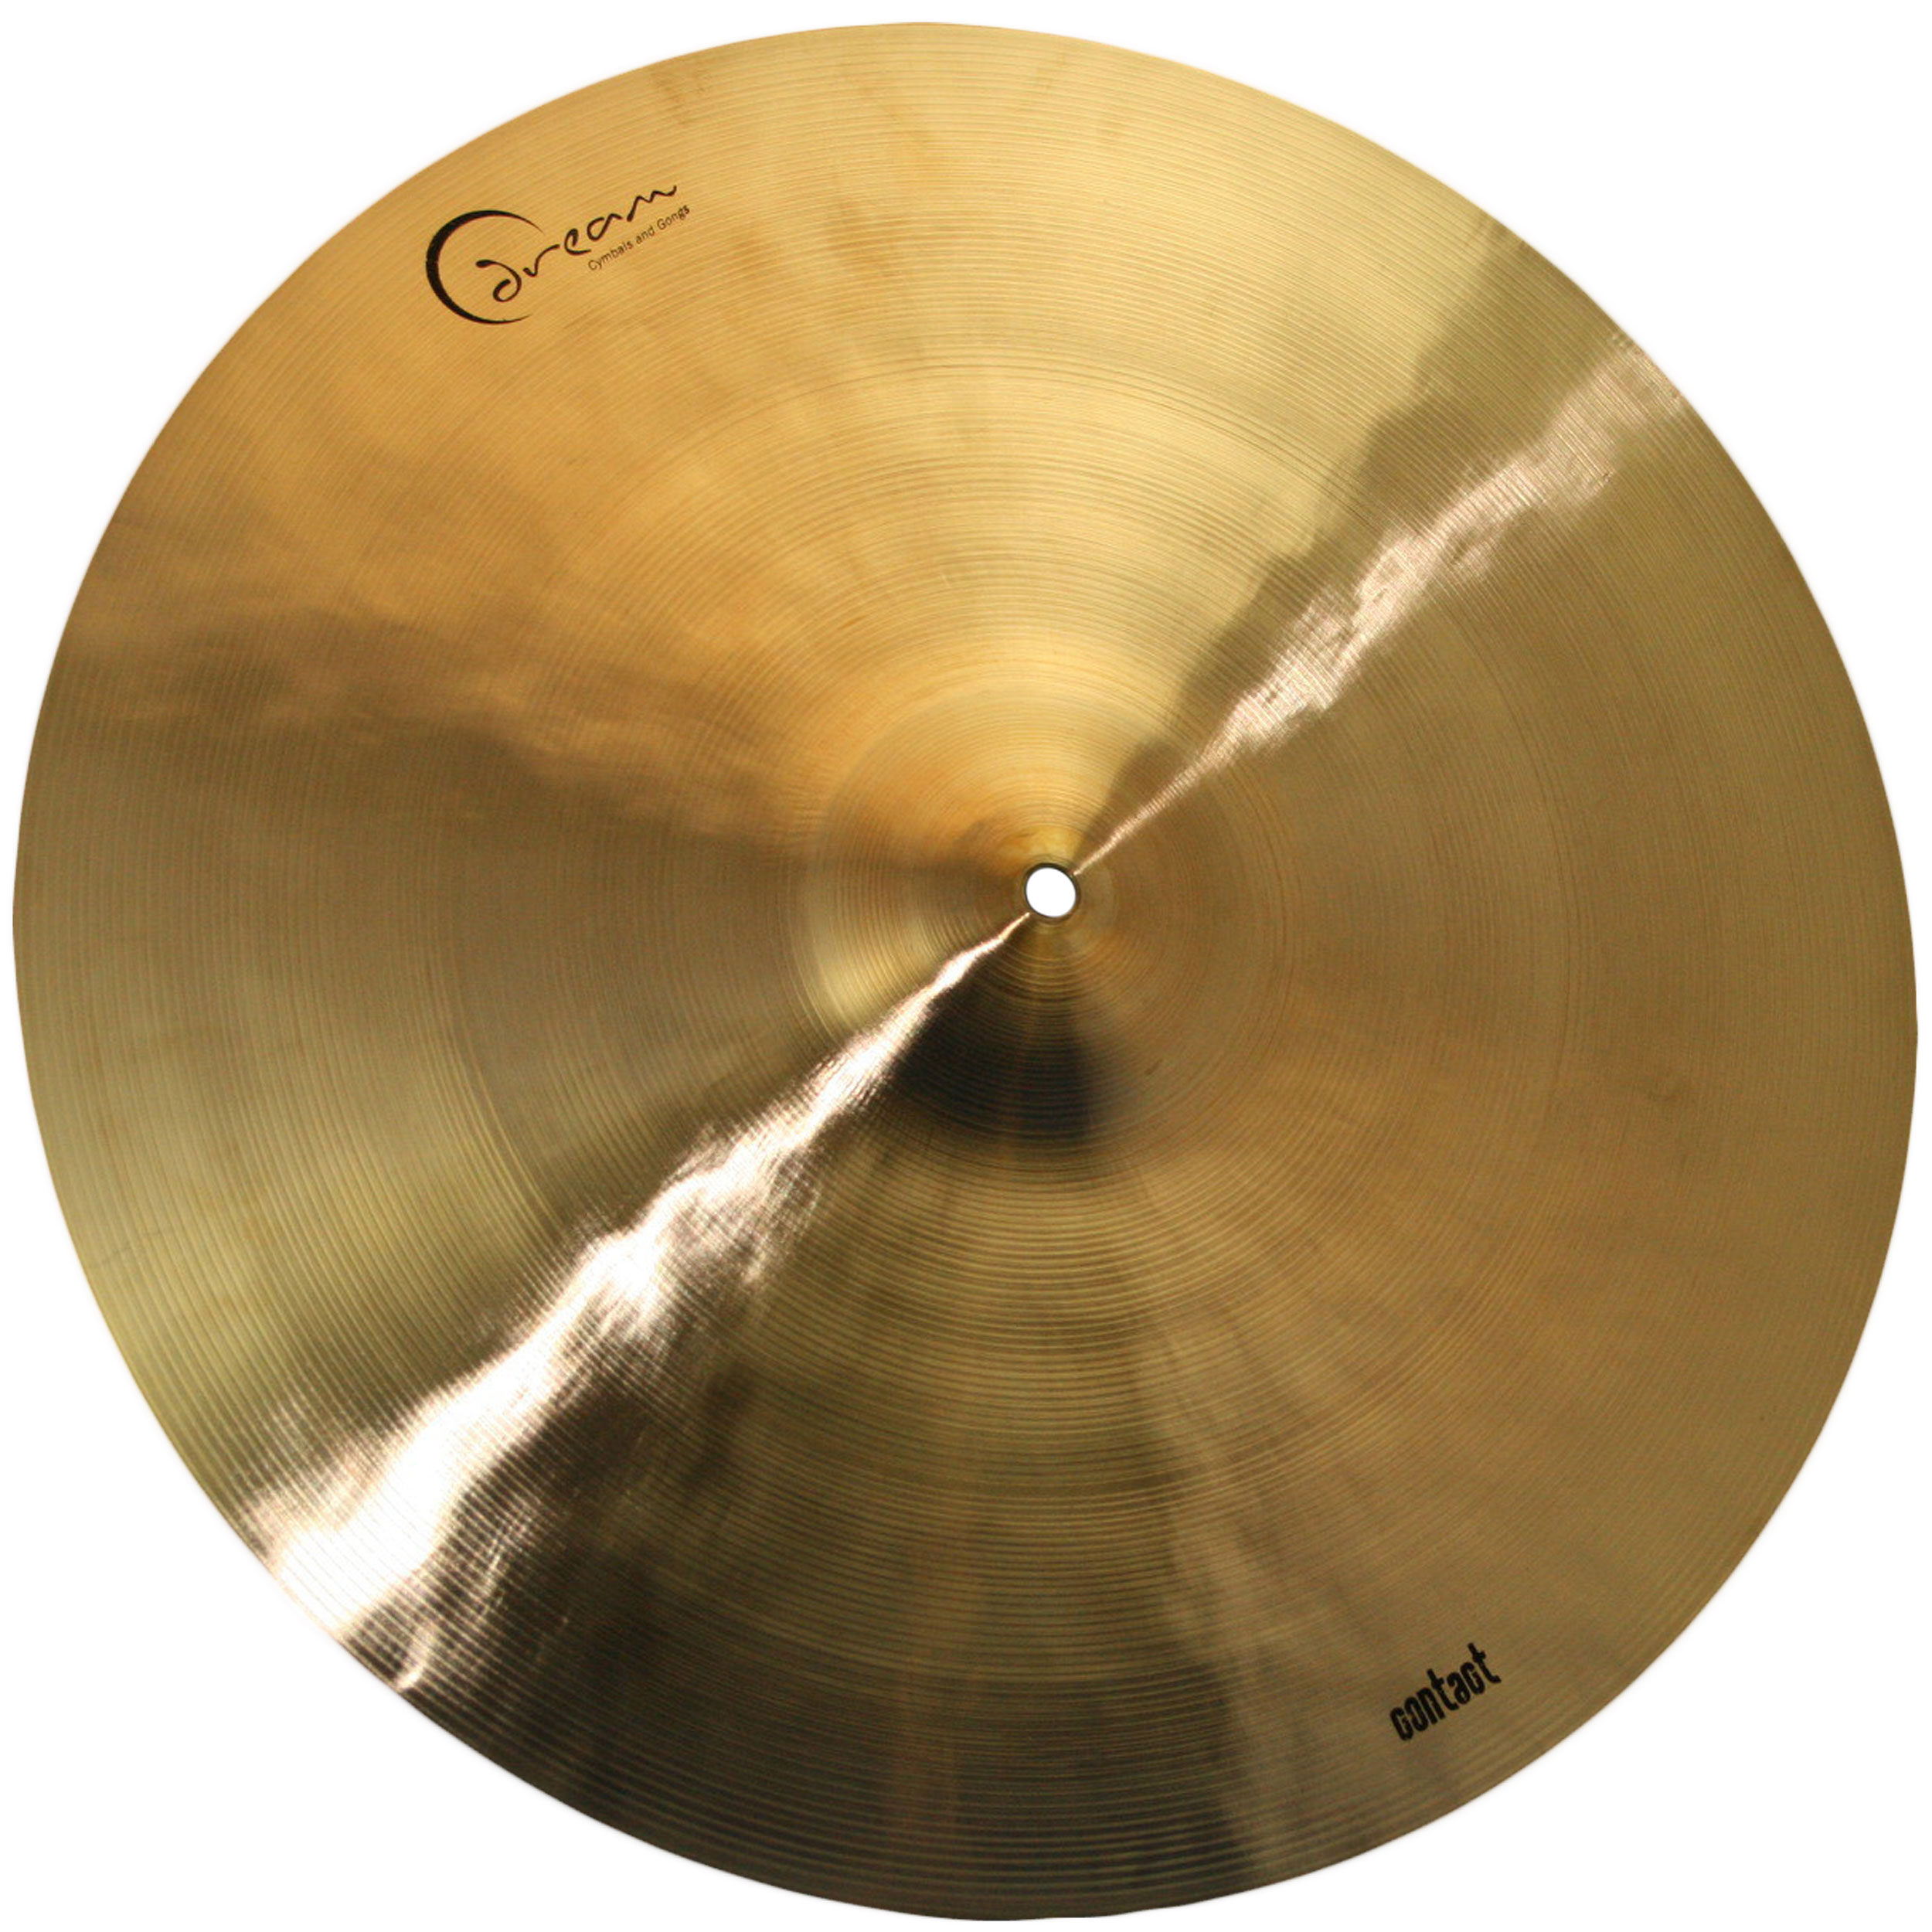 "Dream 20"" Contact Ride Cymbal"